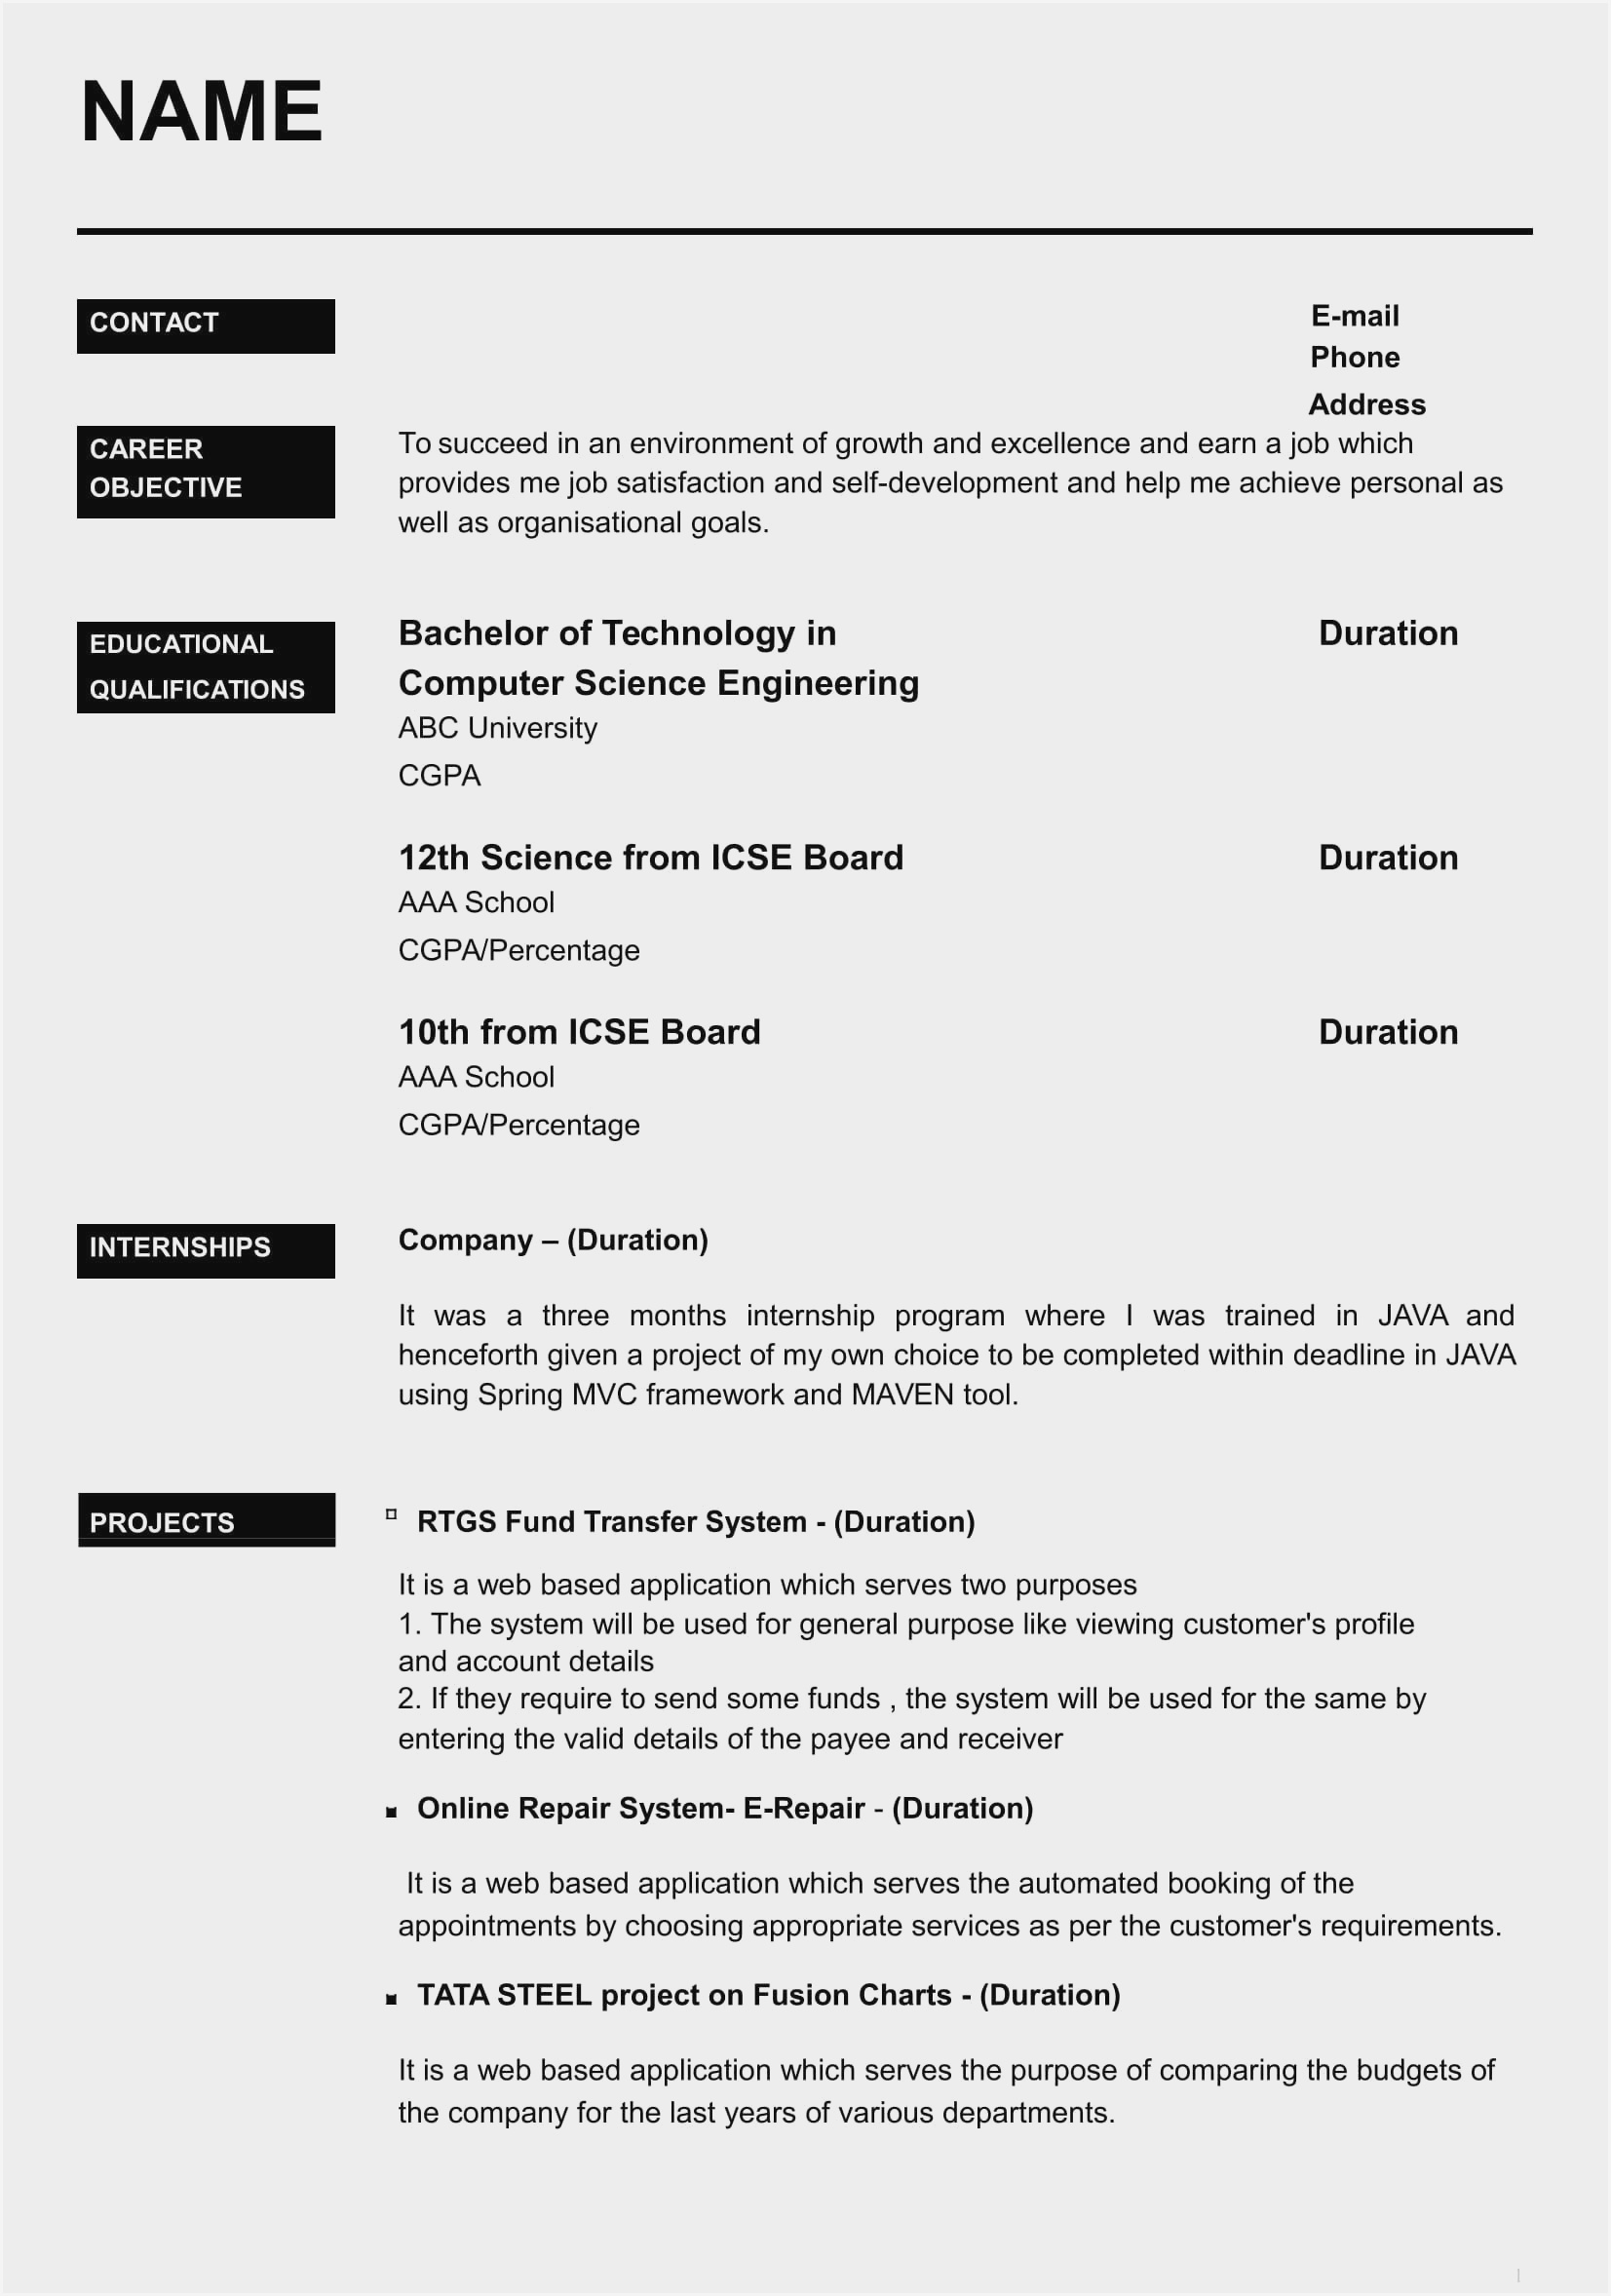 resume format free sample for freshers pdf implement synonym sorority social template Resume Resume Format For Freshers Pdf